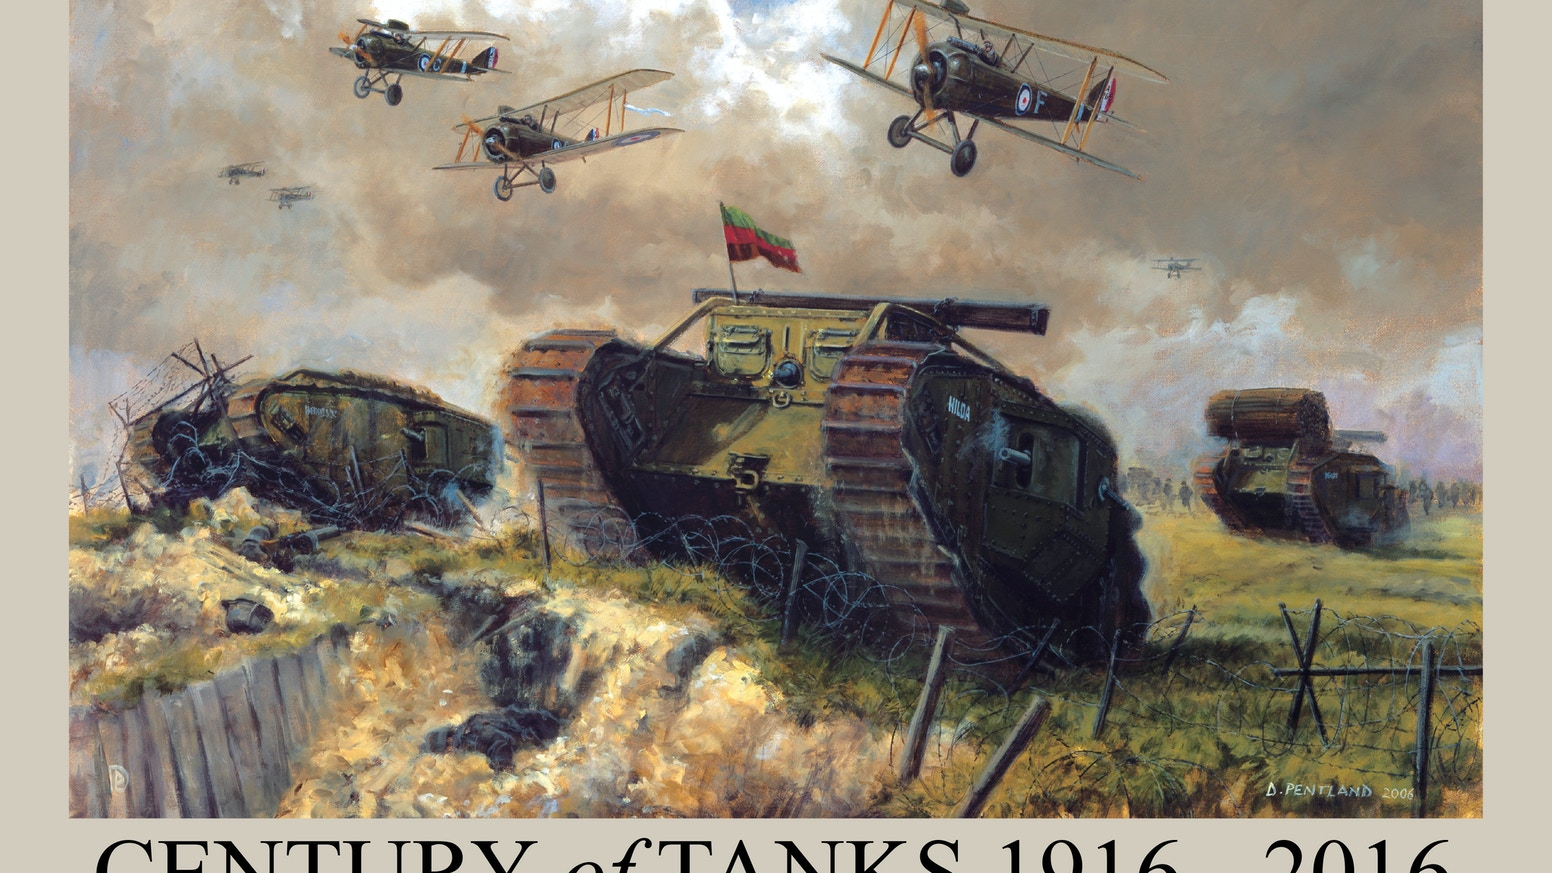 An illustrated history of the tank over the last 100 years told through the paintings and drawings of the artist David Pentland